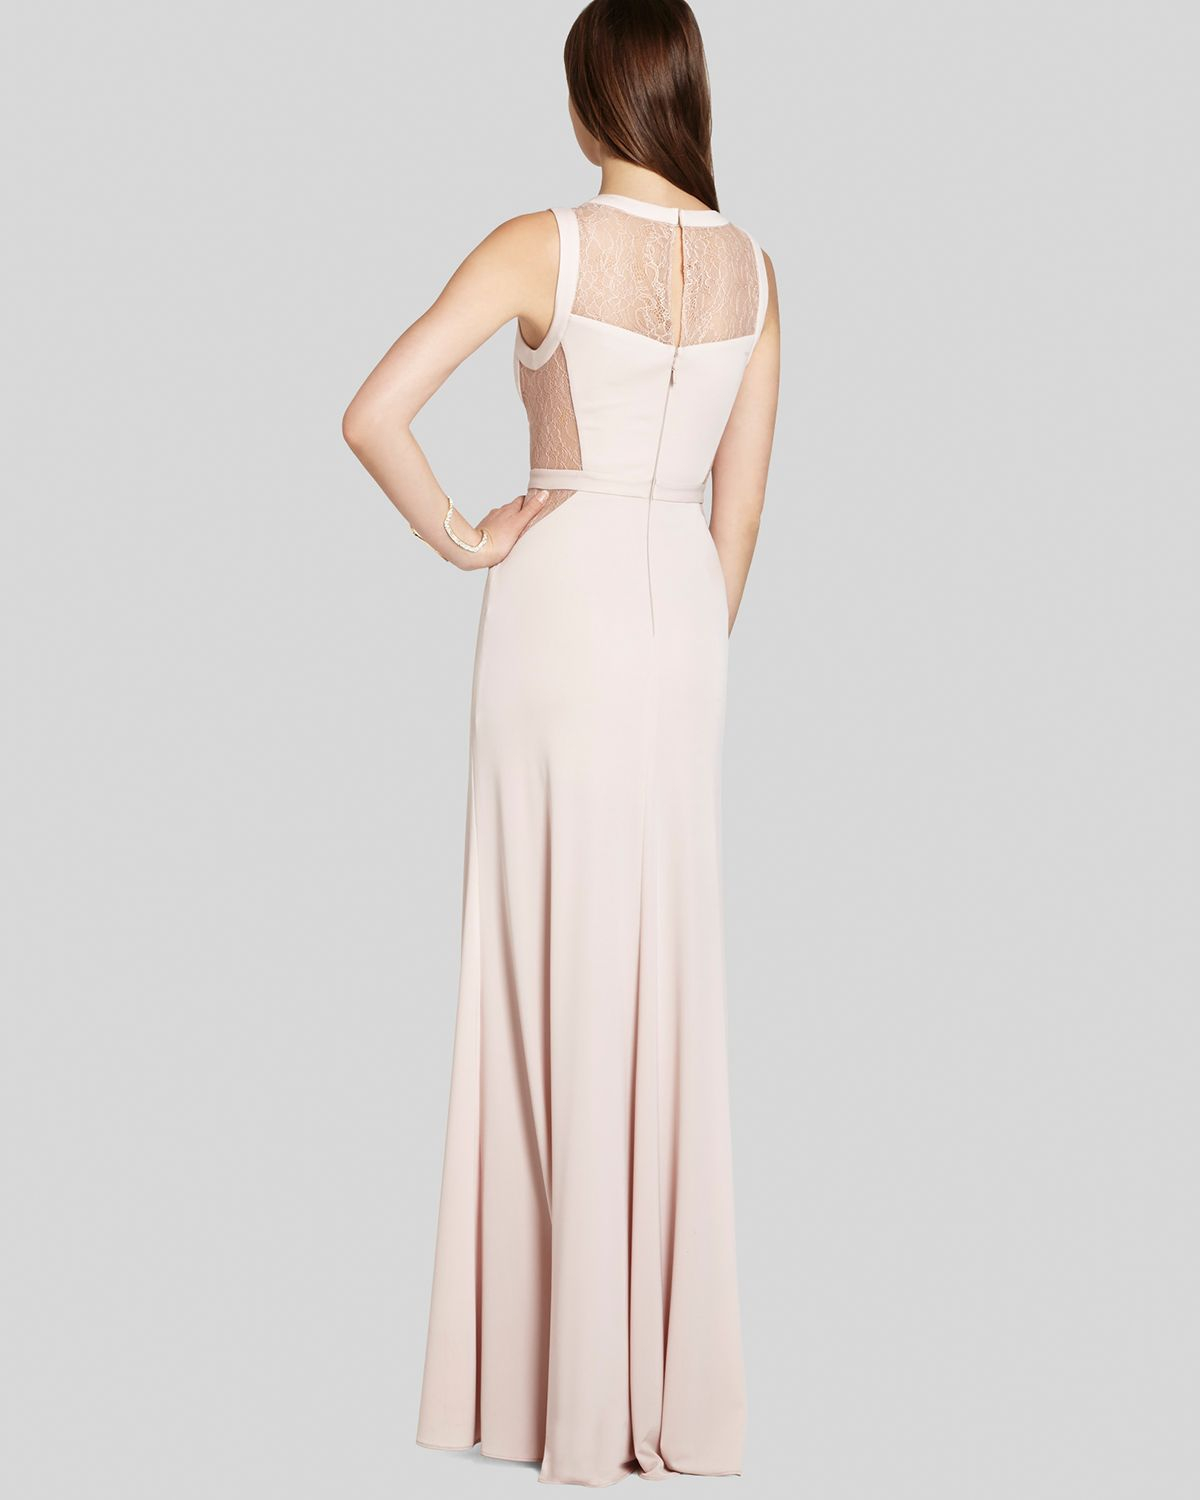 Lyst - Bcbgmaxazria Gown - Cristy V Neck Lace Inset Jersey in Pink